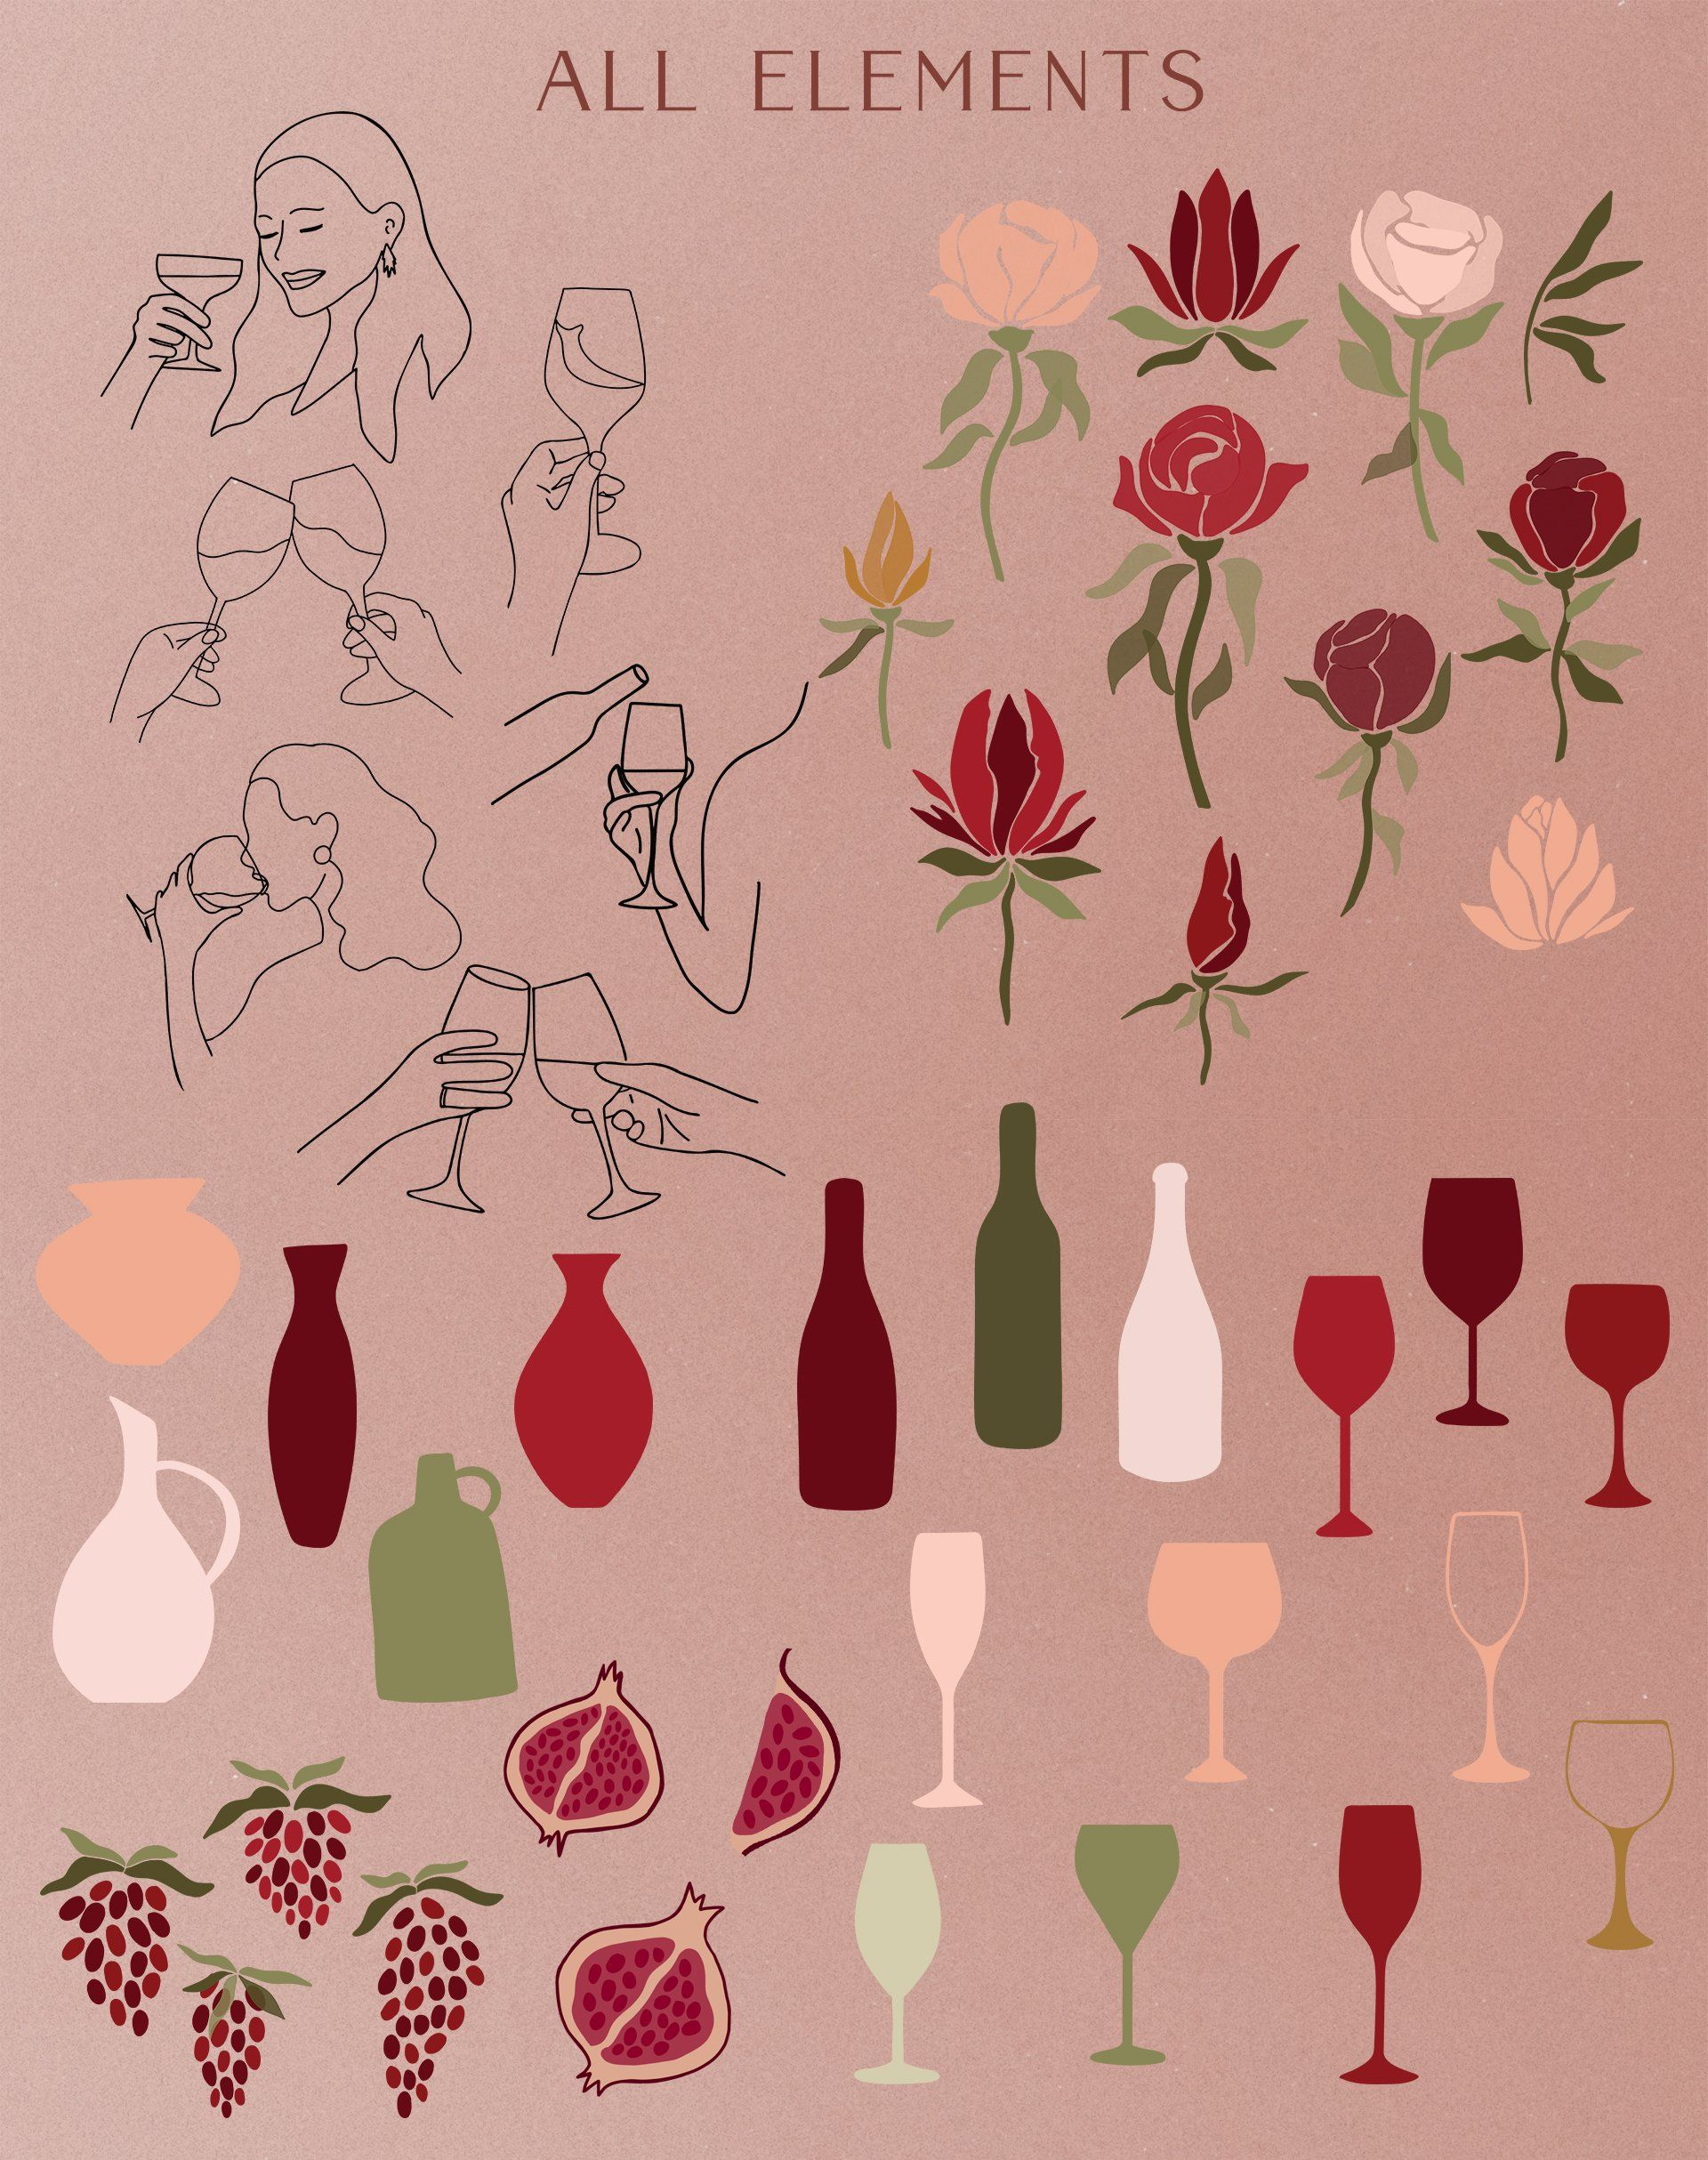 Abstract Wine Collection Bonus In 2020 Wine Collection Wine Theme Instagram Branding